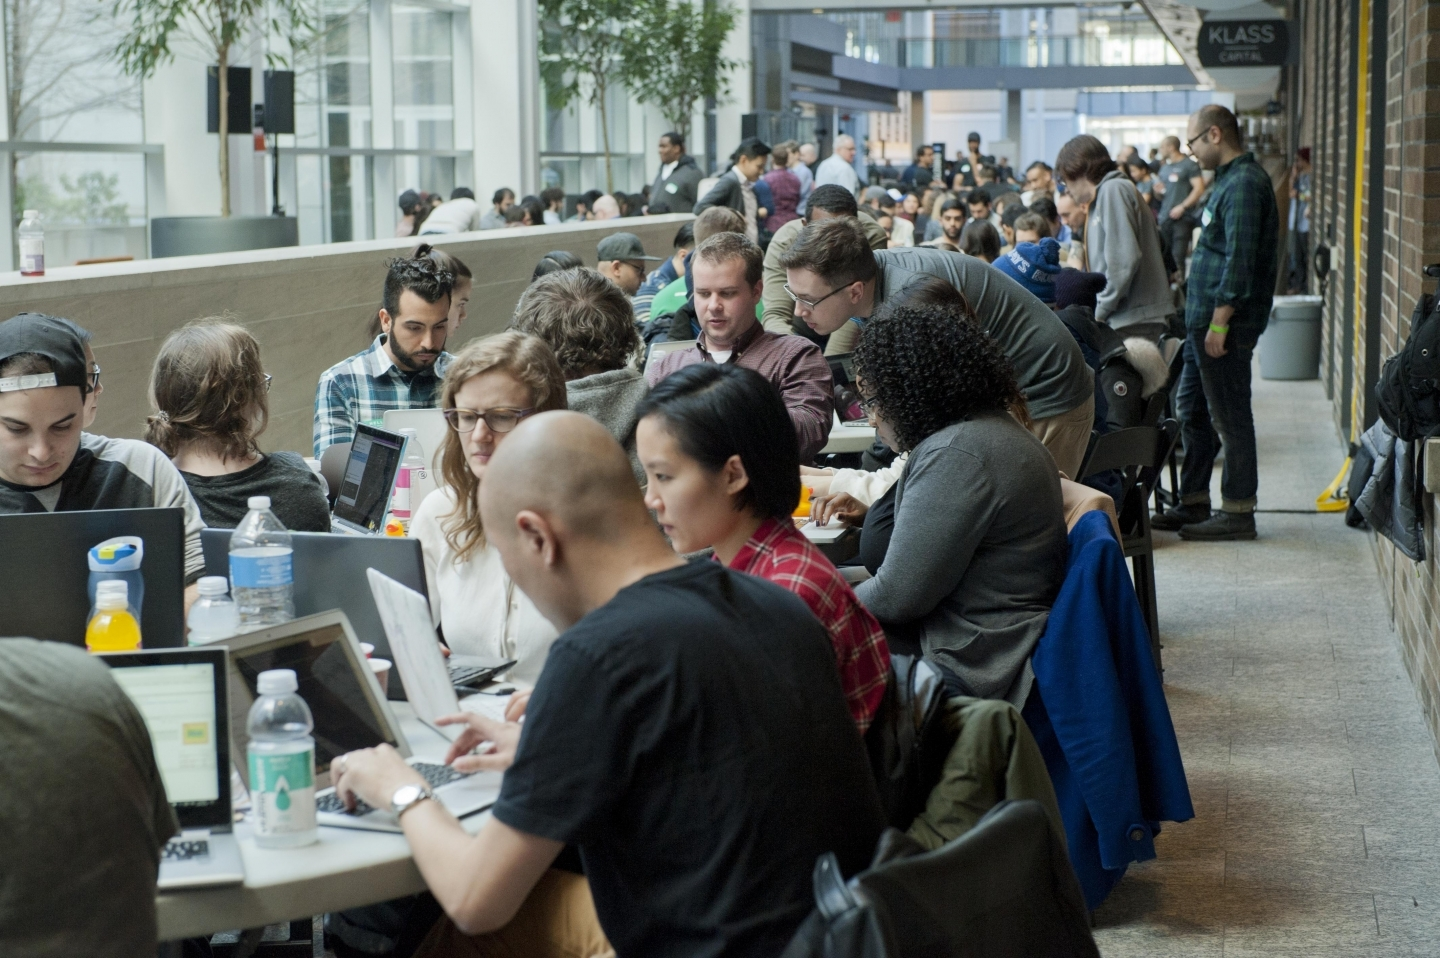 A hackathon in the MaRS Discovery District. (MaRS Photo)